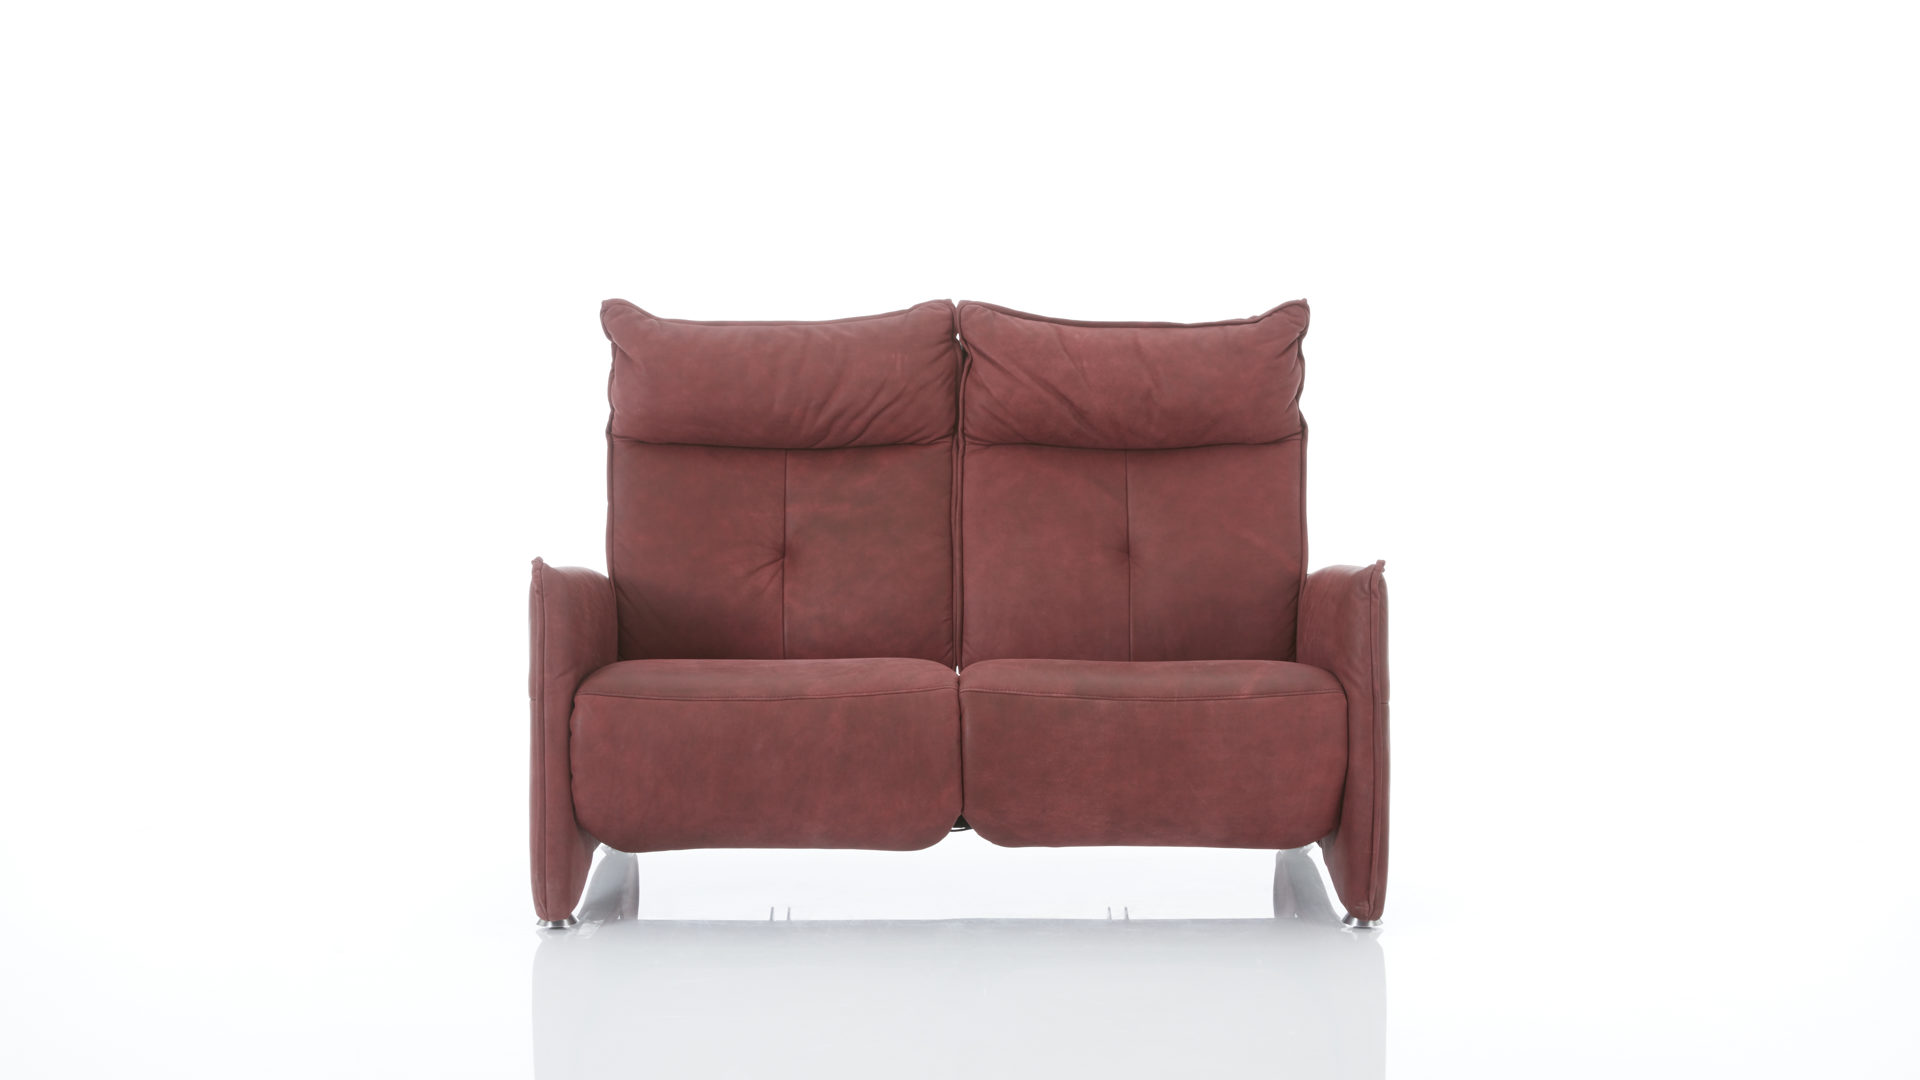 Himolla Relax Sofa 2 5 Sitzer Interliving Sofa Serie 4200 2 5 Sitzer Mit Relaxassist